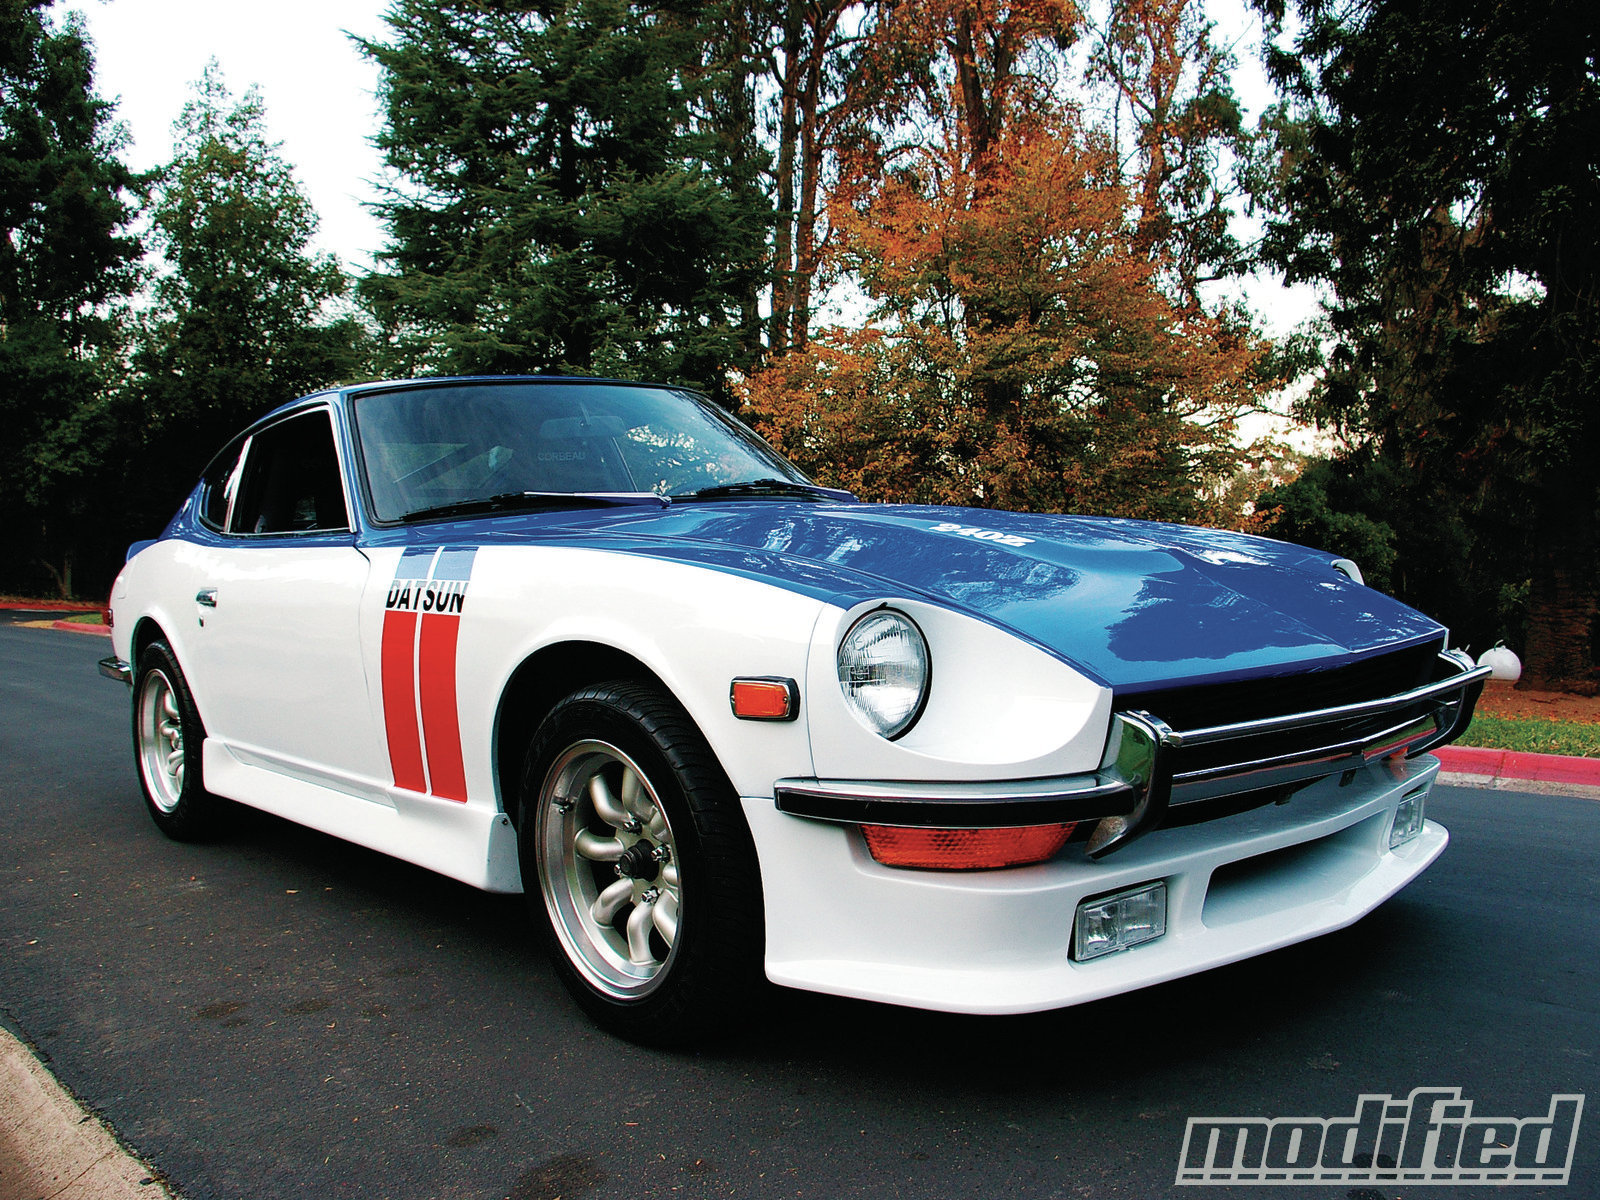 Datsun 240z Wallpaper - WallpaperSafari1972 Datsun 240z Wallpaper